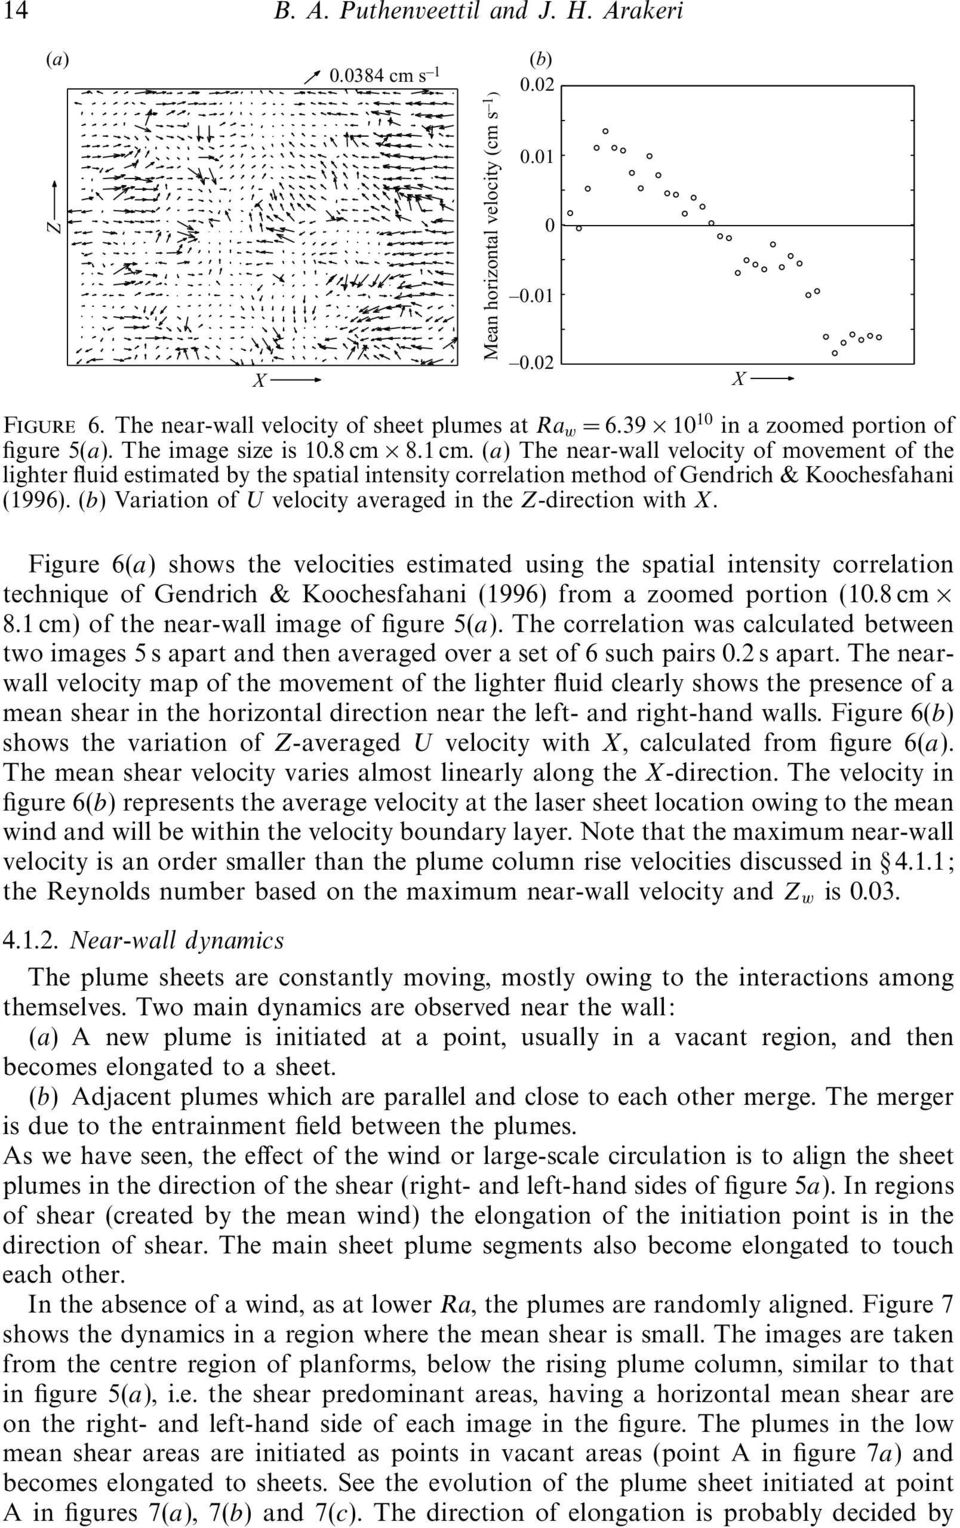 (a) The near-wall velocity of movement of the lighter fluid estimated by the spatial intensity correlation method of Gendrich & Koochesfahani (1996).